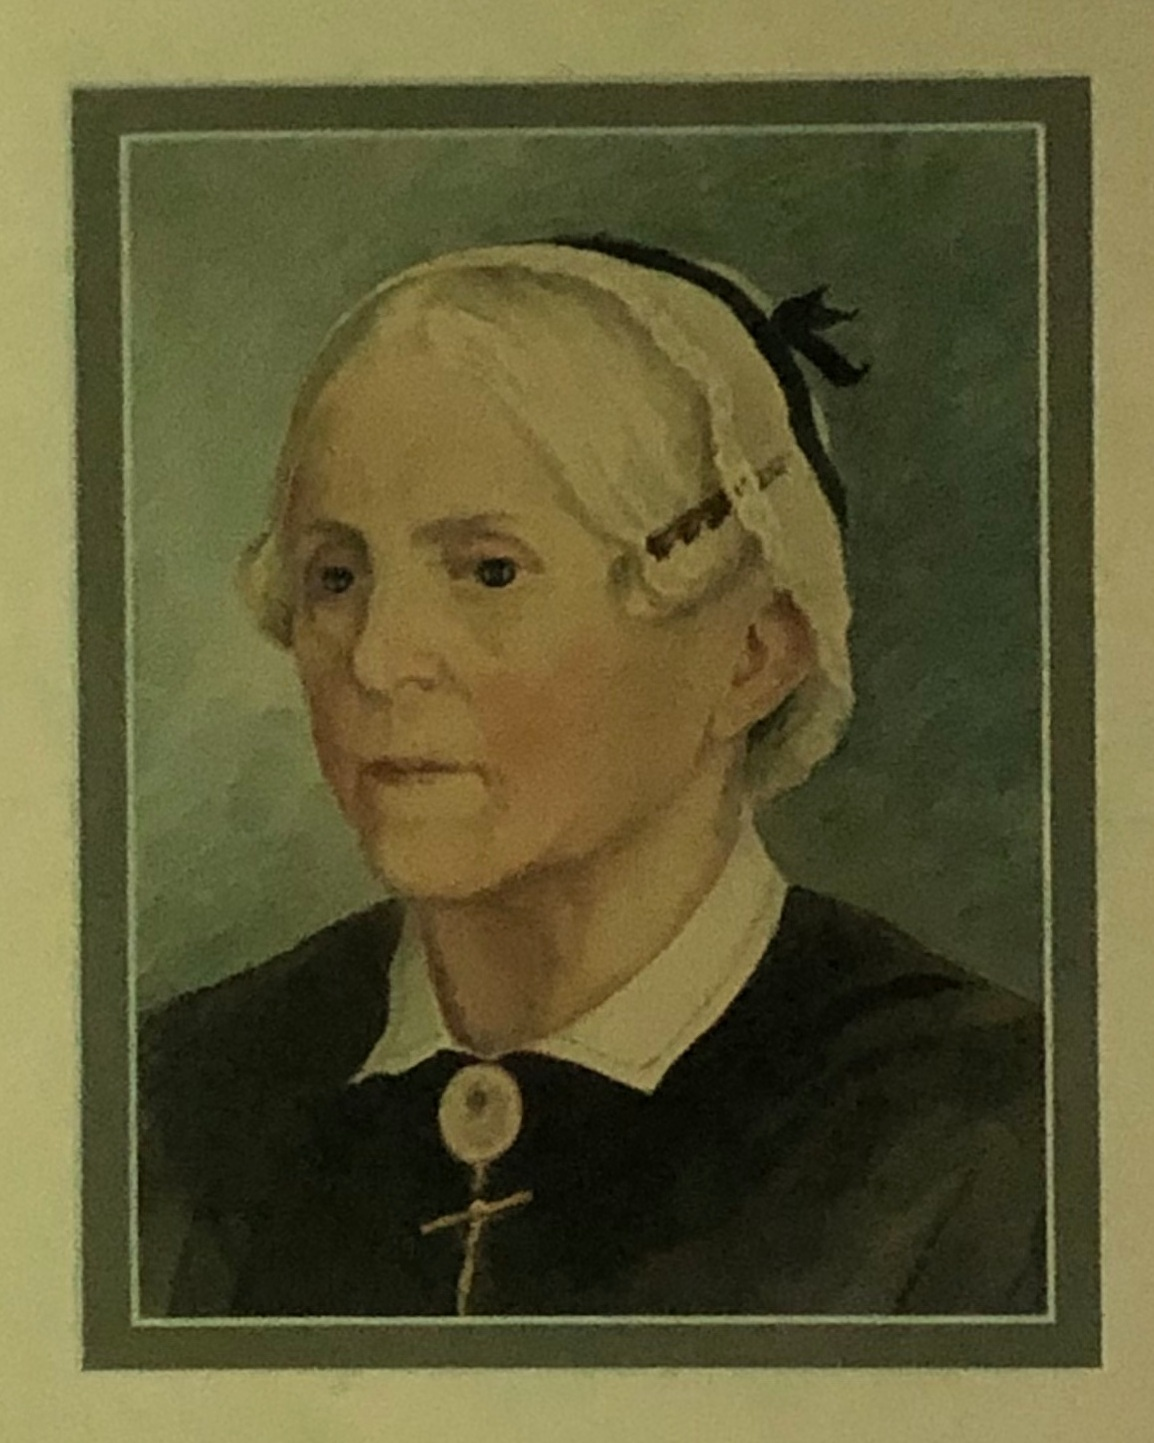 """A portrait Sarah Phelps by her niece Ellen Bullfinch.   """"Our glance rests more gladly upon the gentle lady herself, portrayed as we last saw her, with the lace cap on her soft white locks and the bit of black velvet at one side, which brought out the rosy softness of her cheek.""""   [2]"""